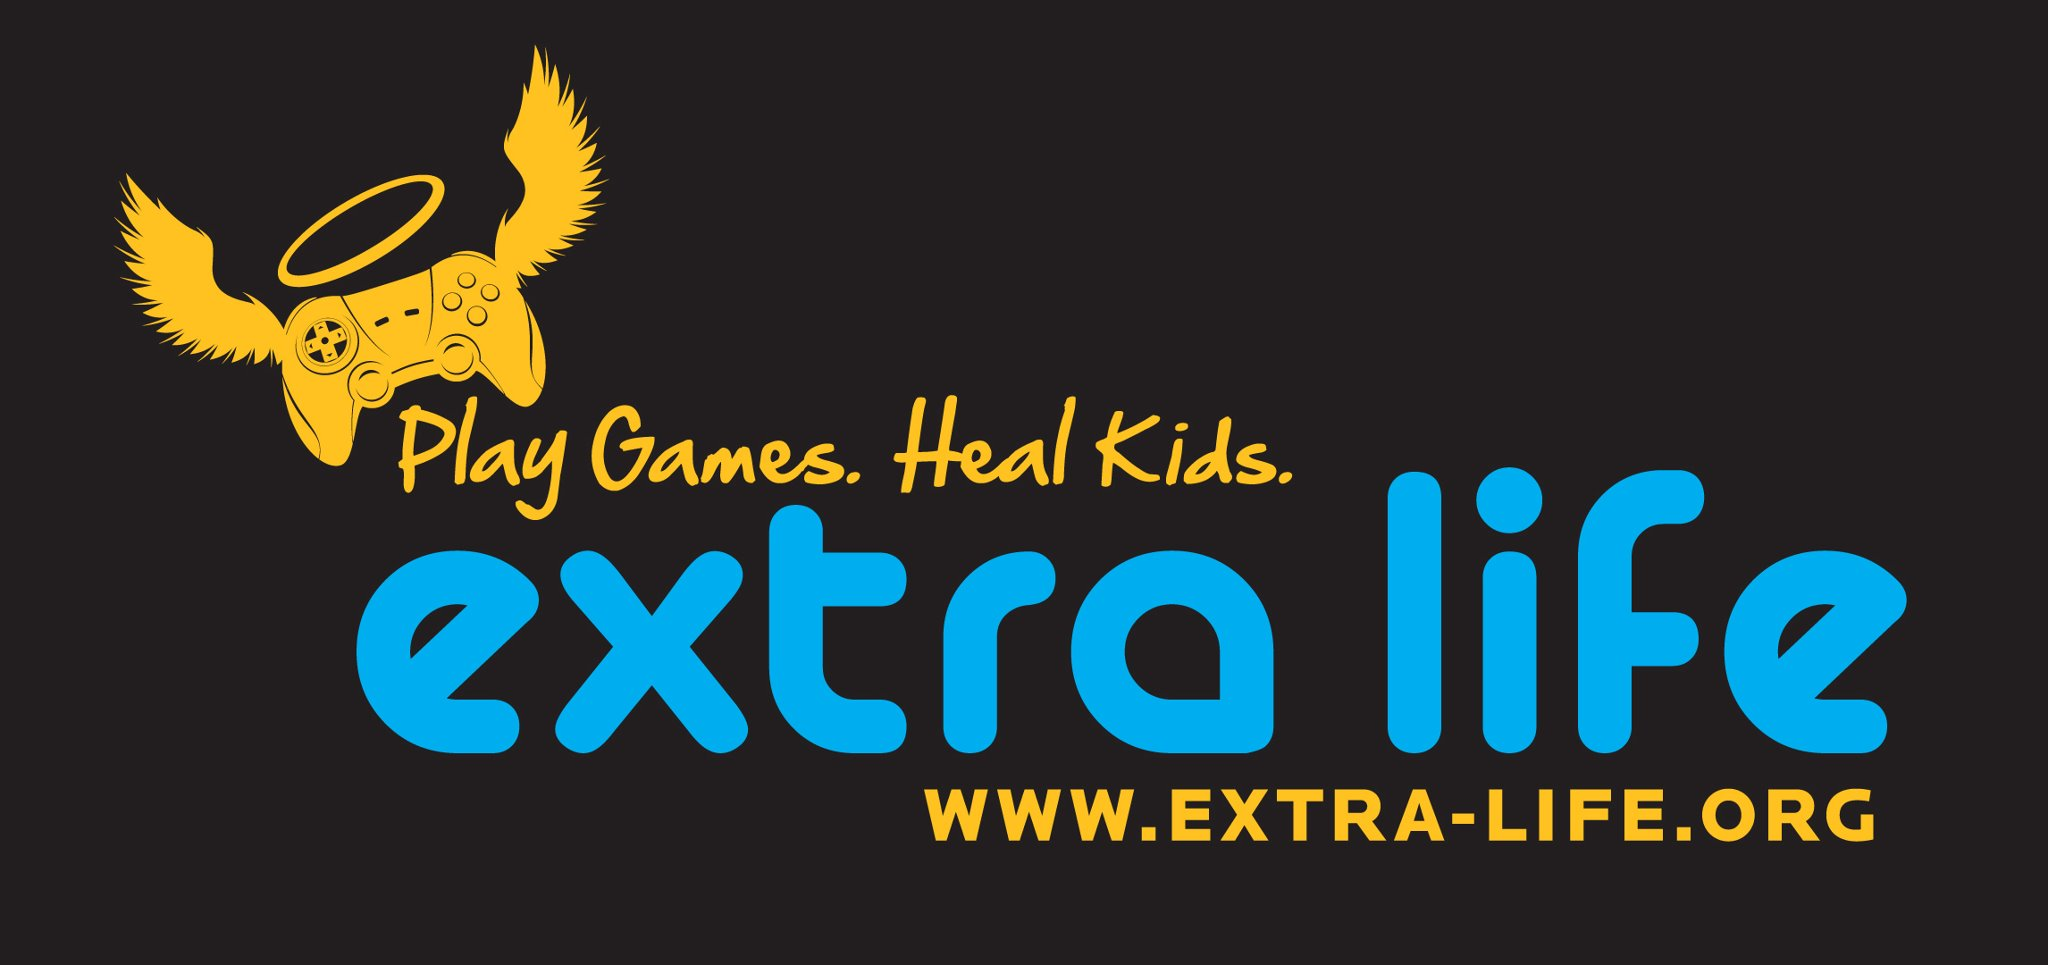 Watch Scott Greig on Twitch to help support Extra Life 2014